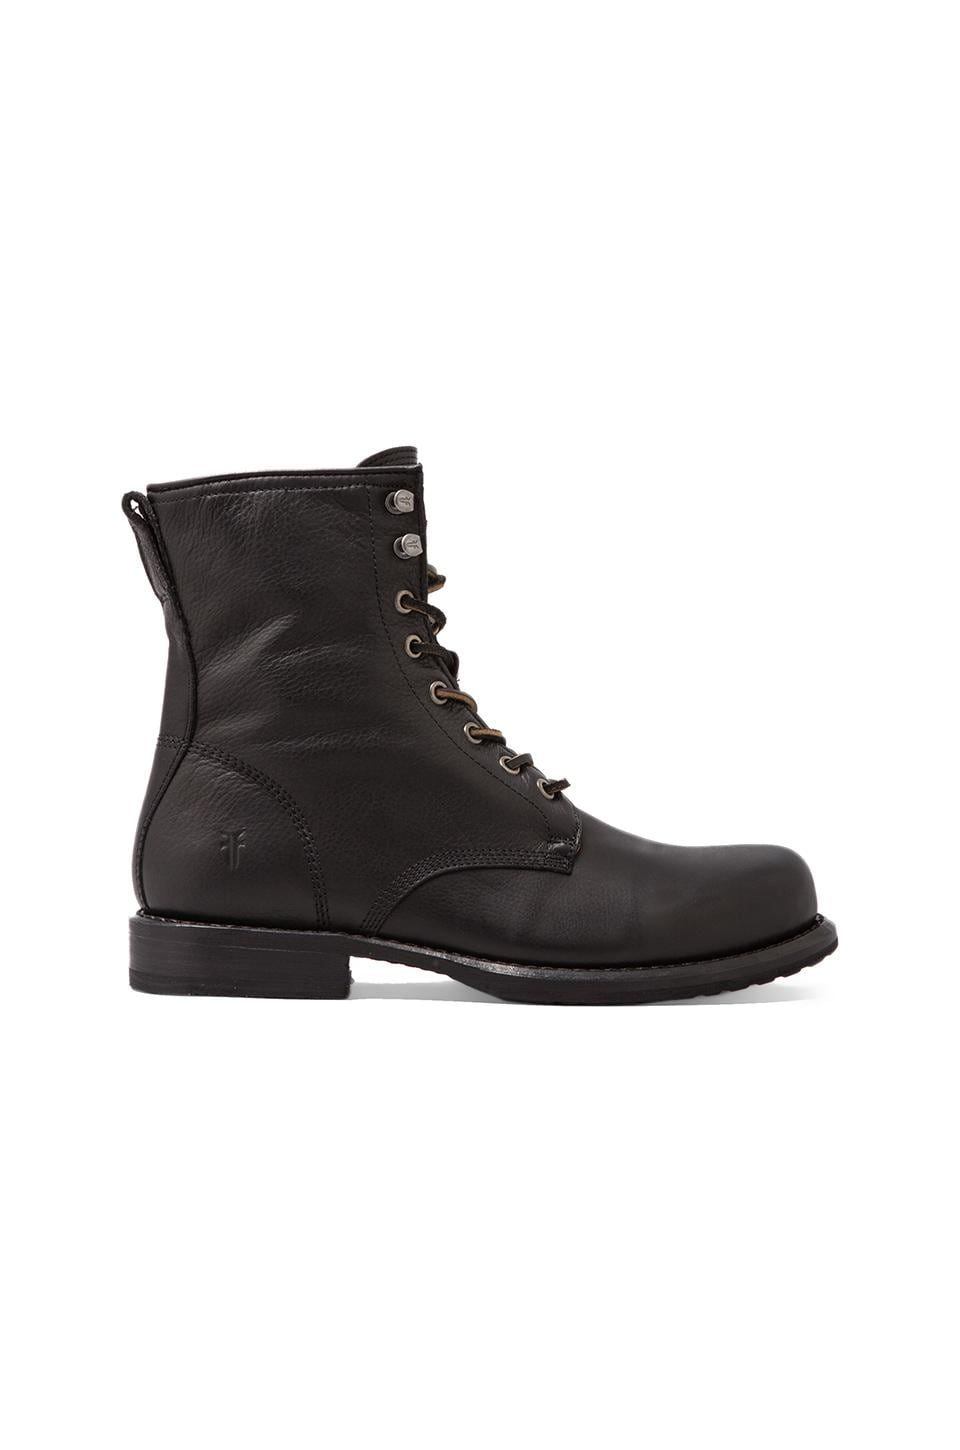 Frye Wayde Combat Boot in Black Soft Vintage Leather